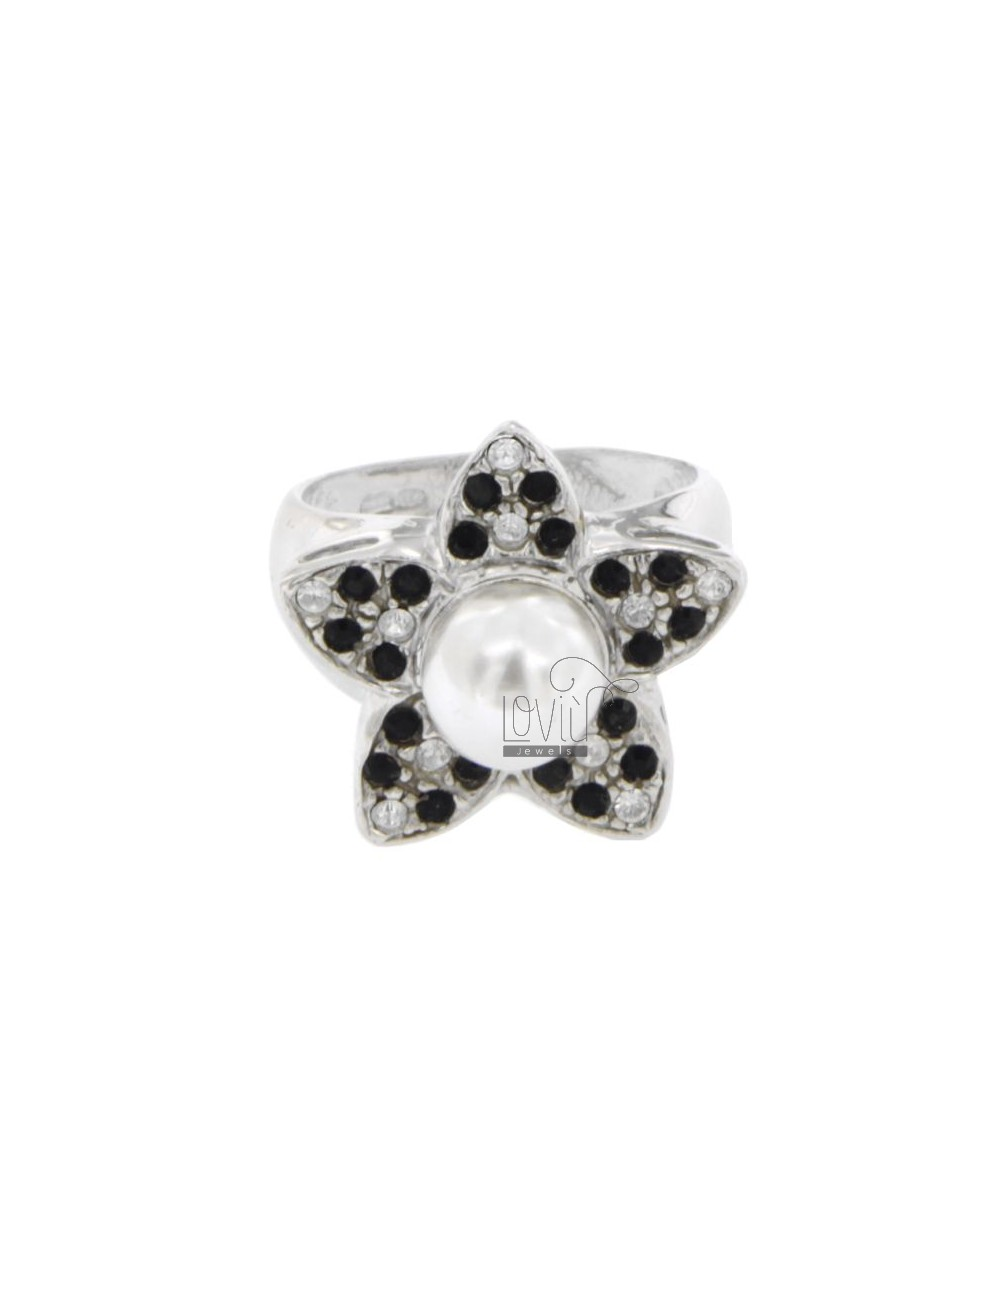 RING IN THE FORM OF A FLOWER WITH RHINESTONE AND PEARL WHITE AND BLACKS IN 8 MM AG RHODIUM TIT 925 SIZE 13